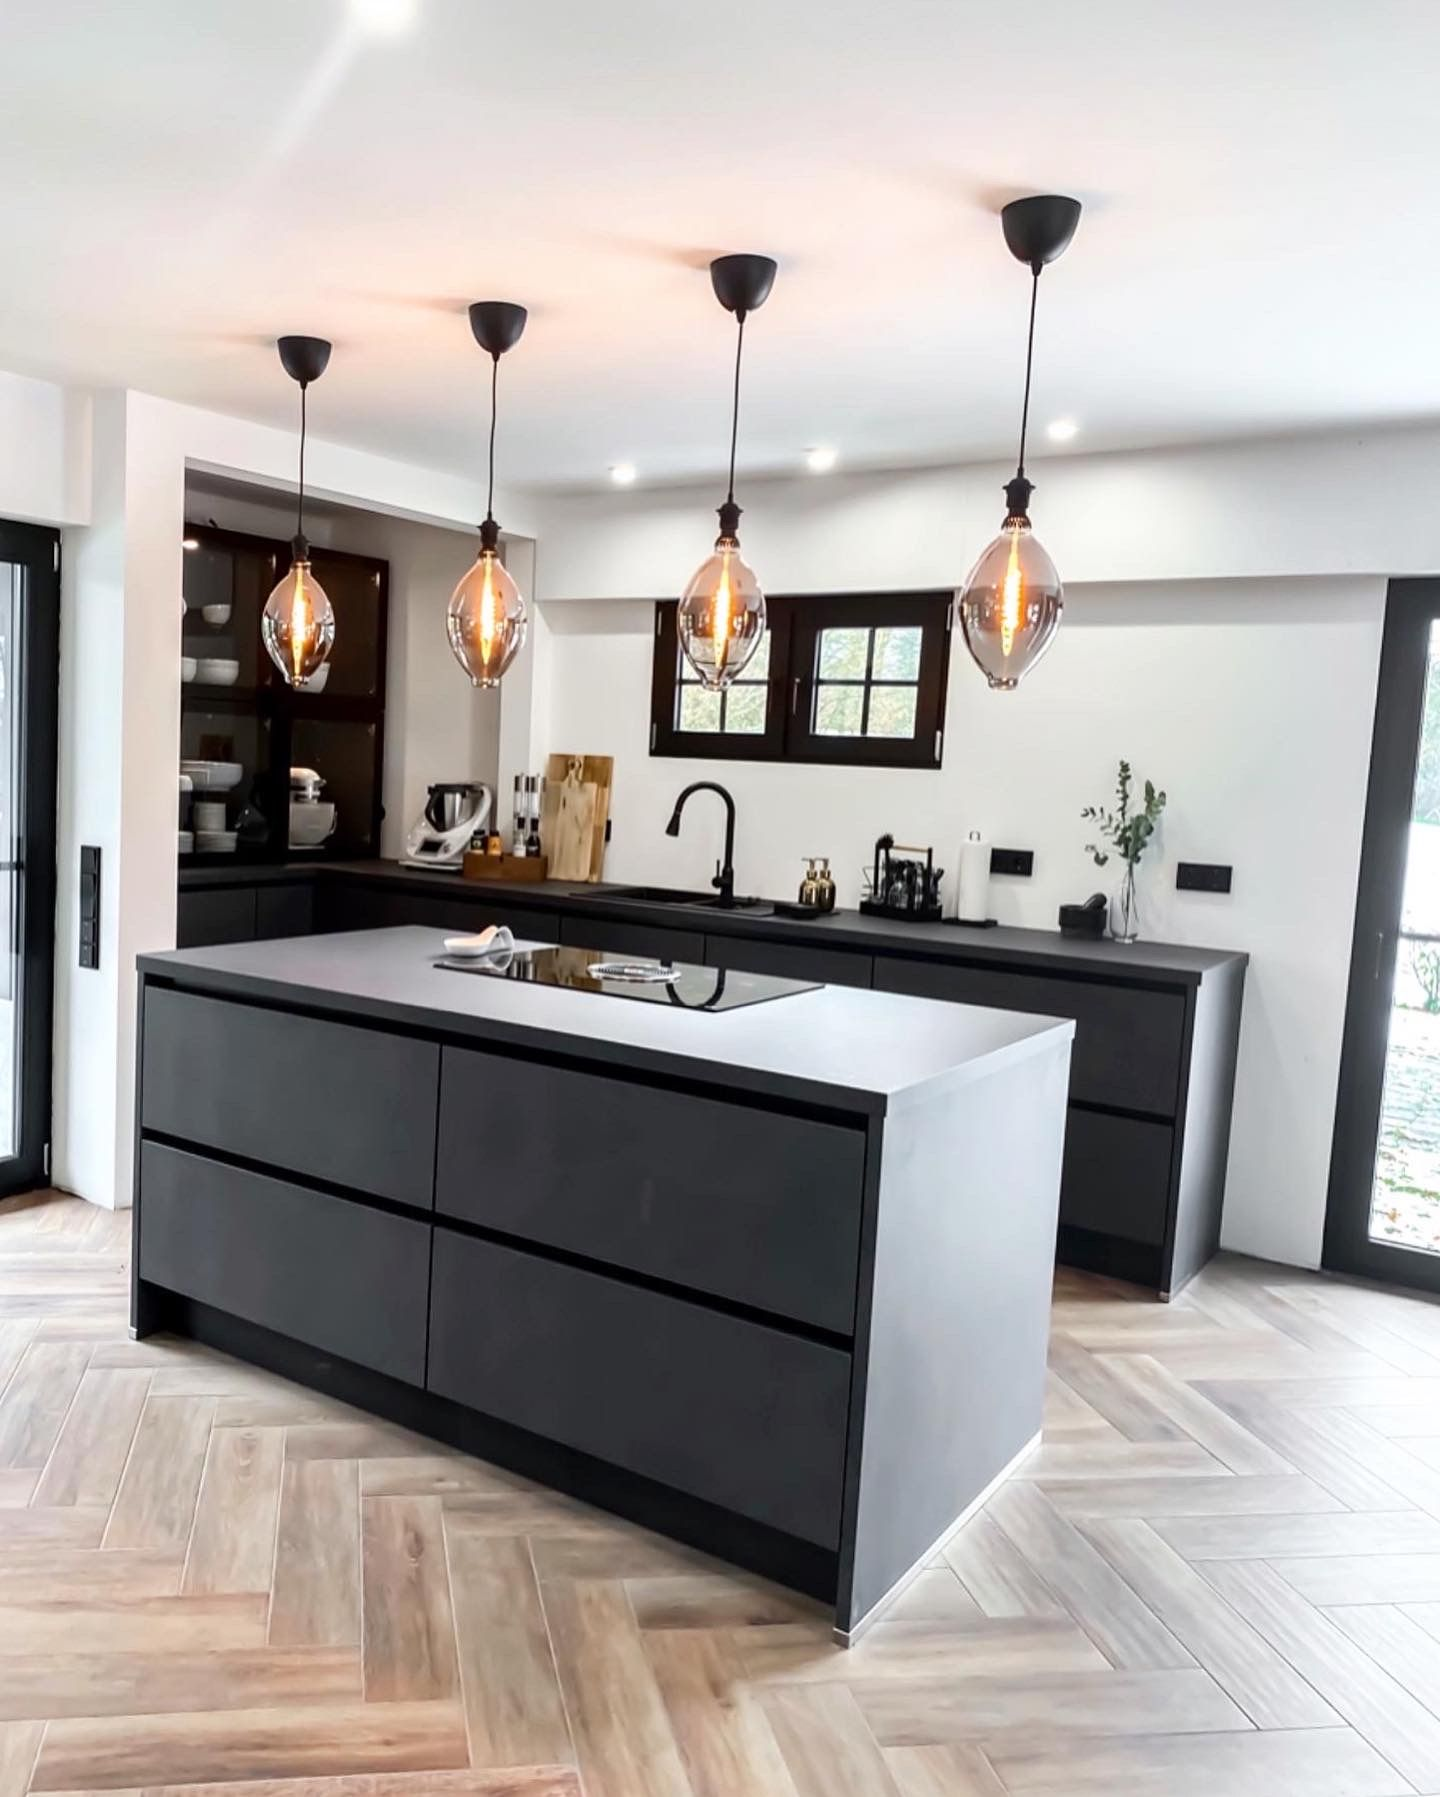 Black Kitchen Herringbone Flooring In 2020 Dunkle Kuche Kuche Holzoptik